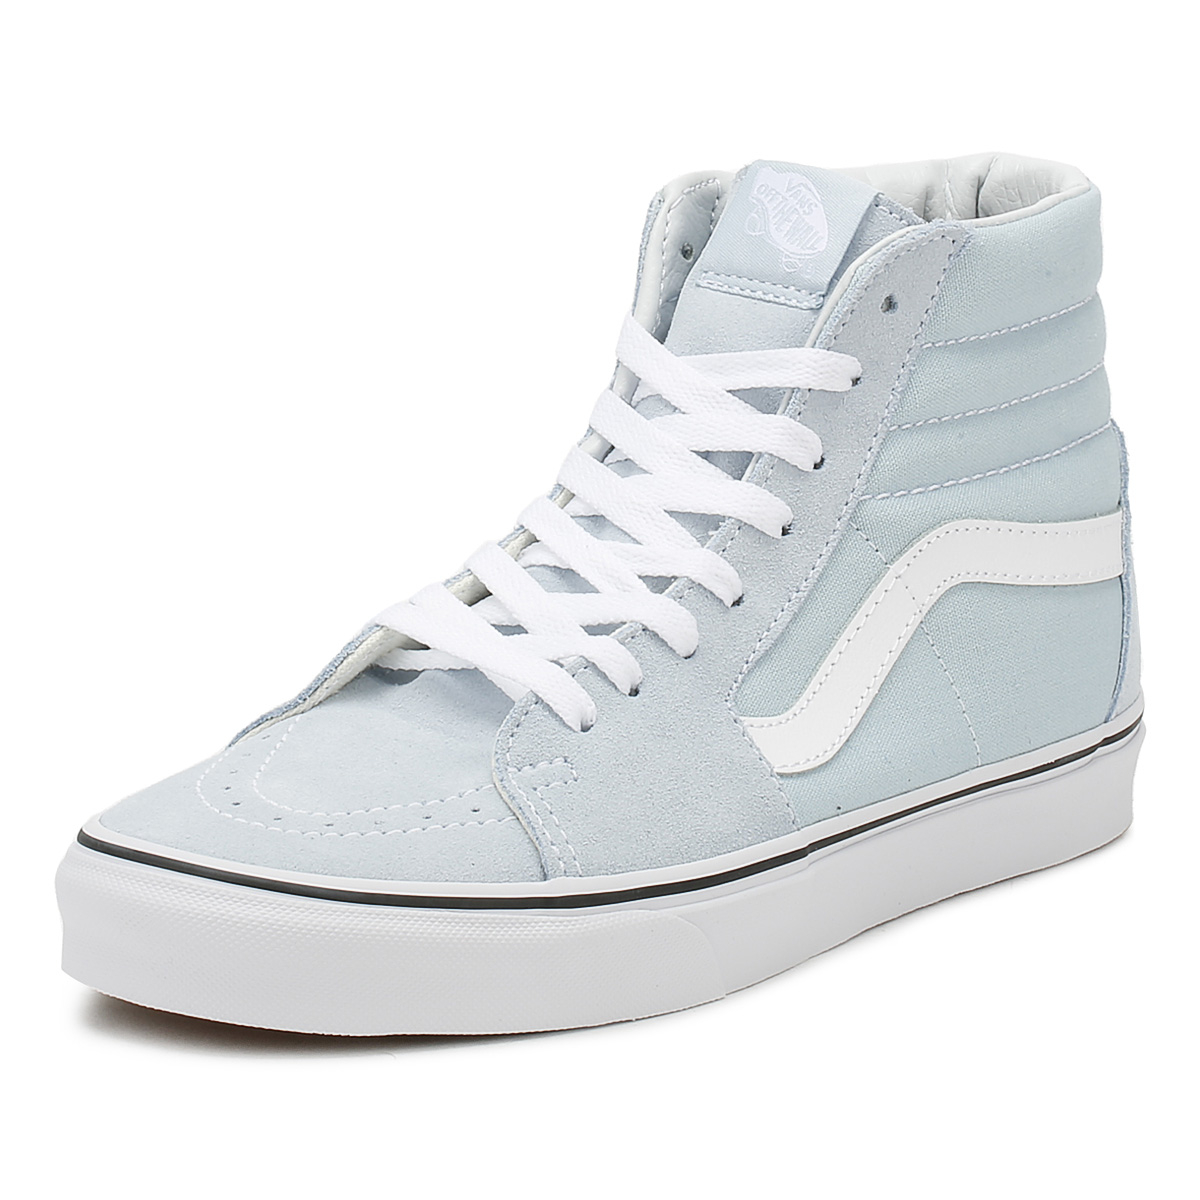 b5528081bdd3 Details about Vans Womens Baby Blue   True White SK8-Hi Trainers Lace Up  Sport Casual Shoes